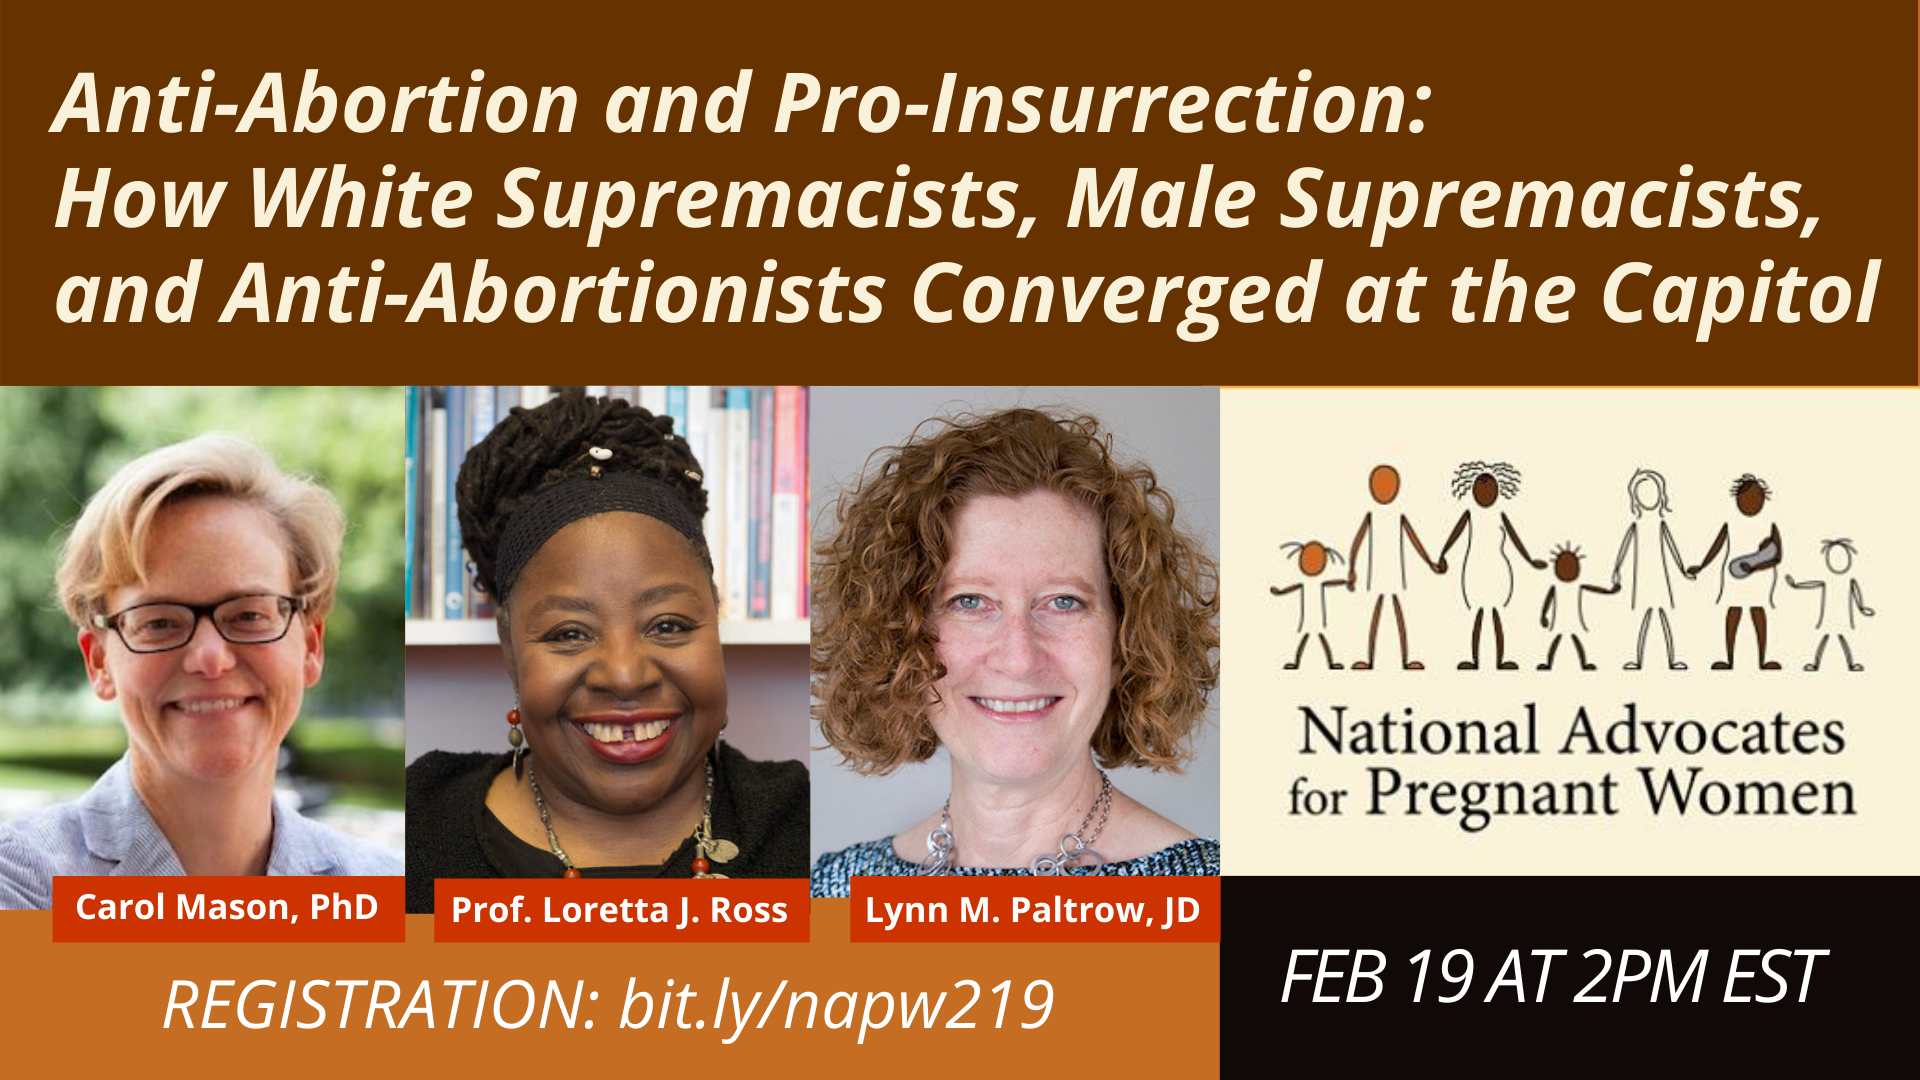 Webinar Recording: Anti-Abortion and Pro-Insurrection: How White Supremacists, Male Supremacists, and Anti-Abortionists Converged at the Capitol